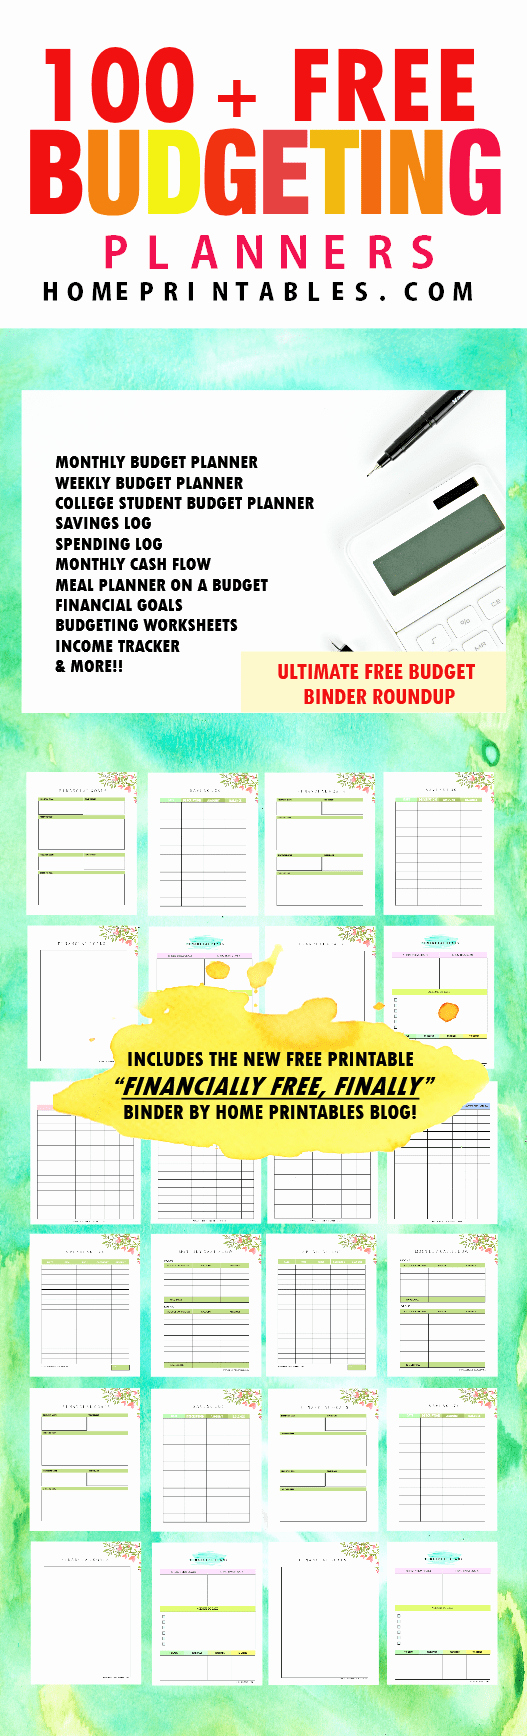 Free Printable Budget Templates Luxury 100 Free Bud Templates for Financial Success Home